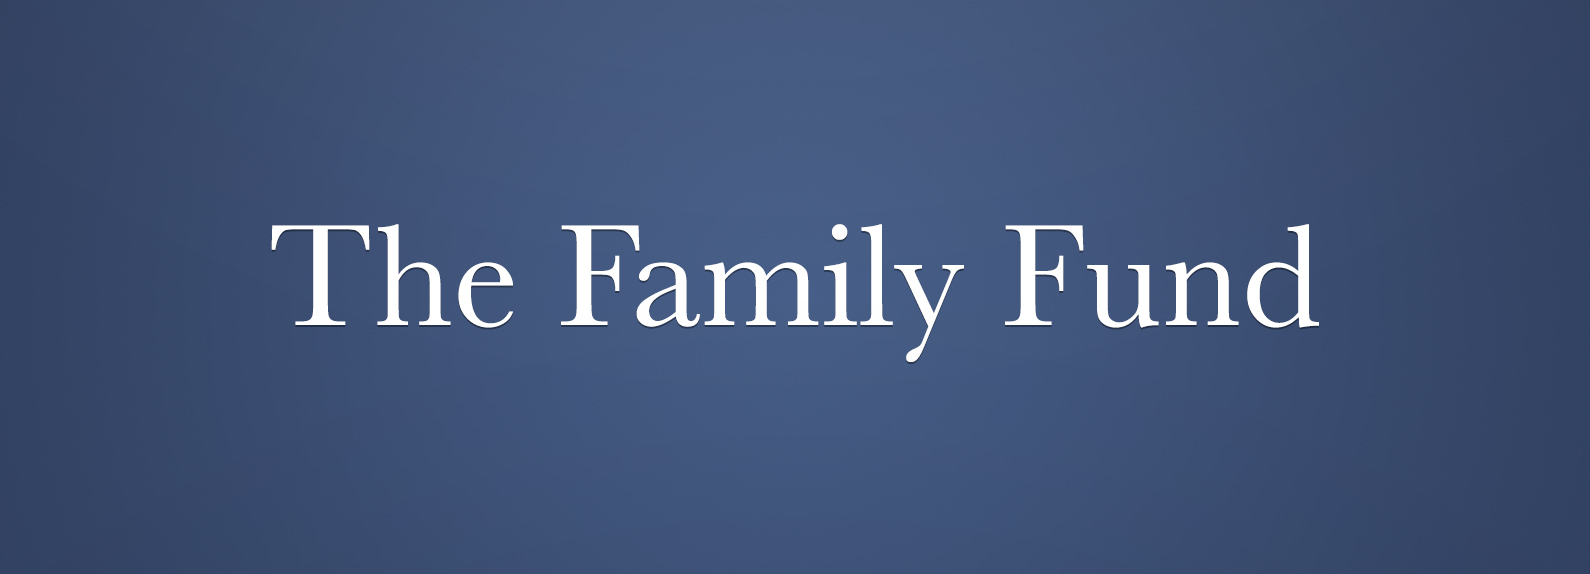 the-family-fund